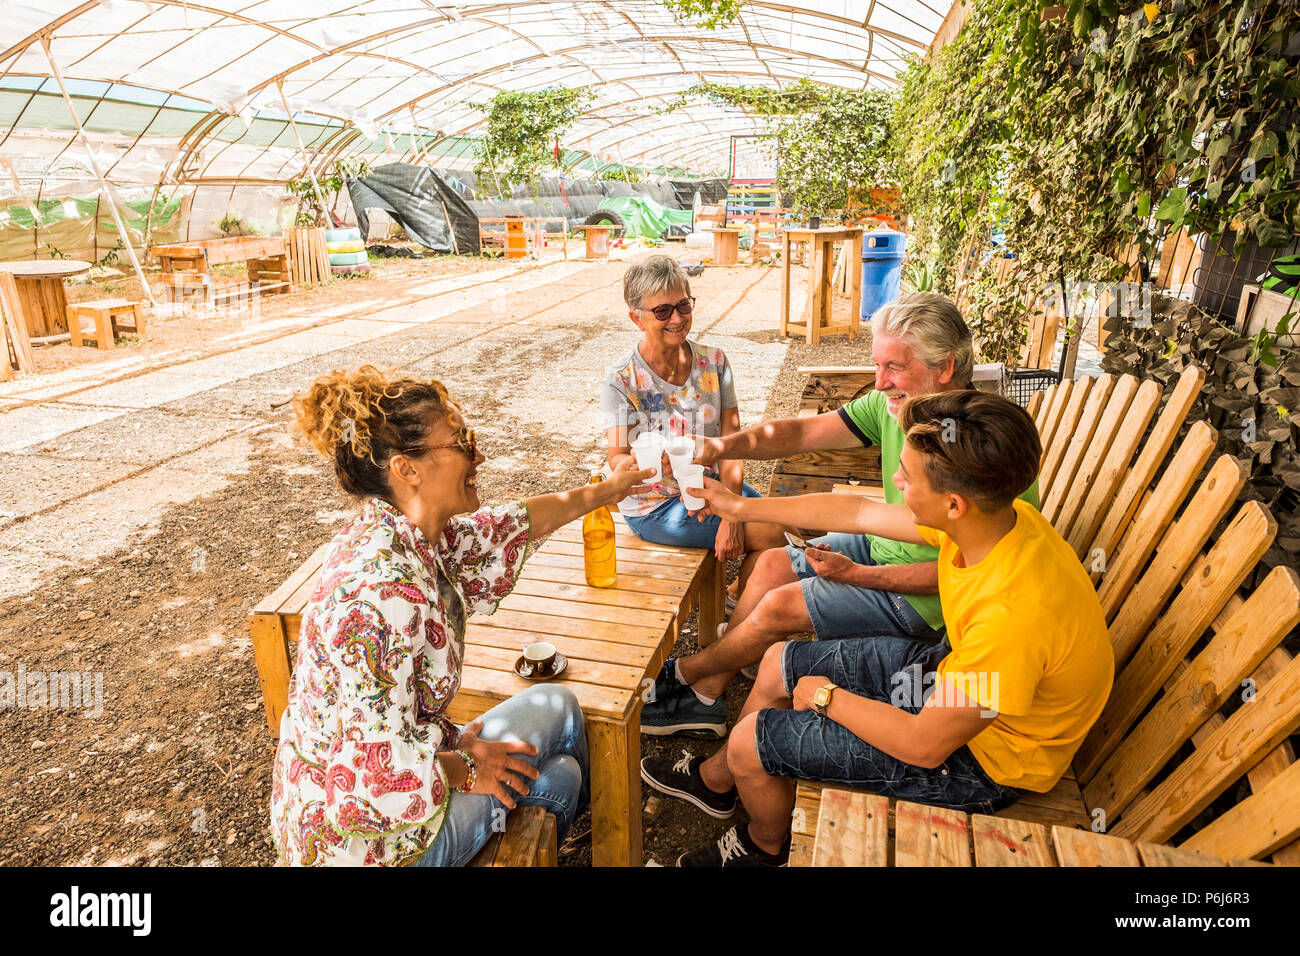 entire family from teenager to mother to grandfathers celebrate together in an outdoor bar restaurant in the nature. happiness all together with smile - Stock Image